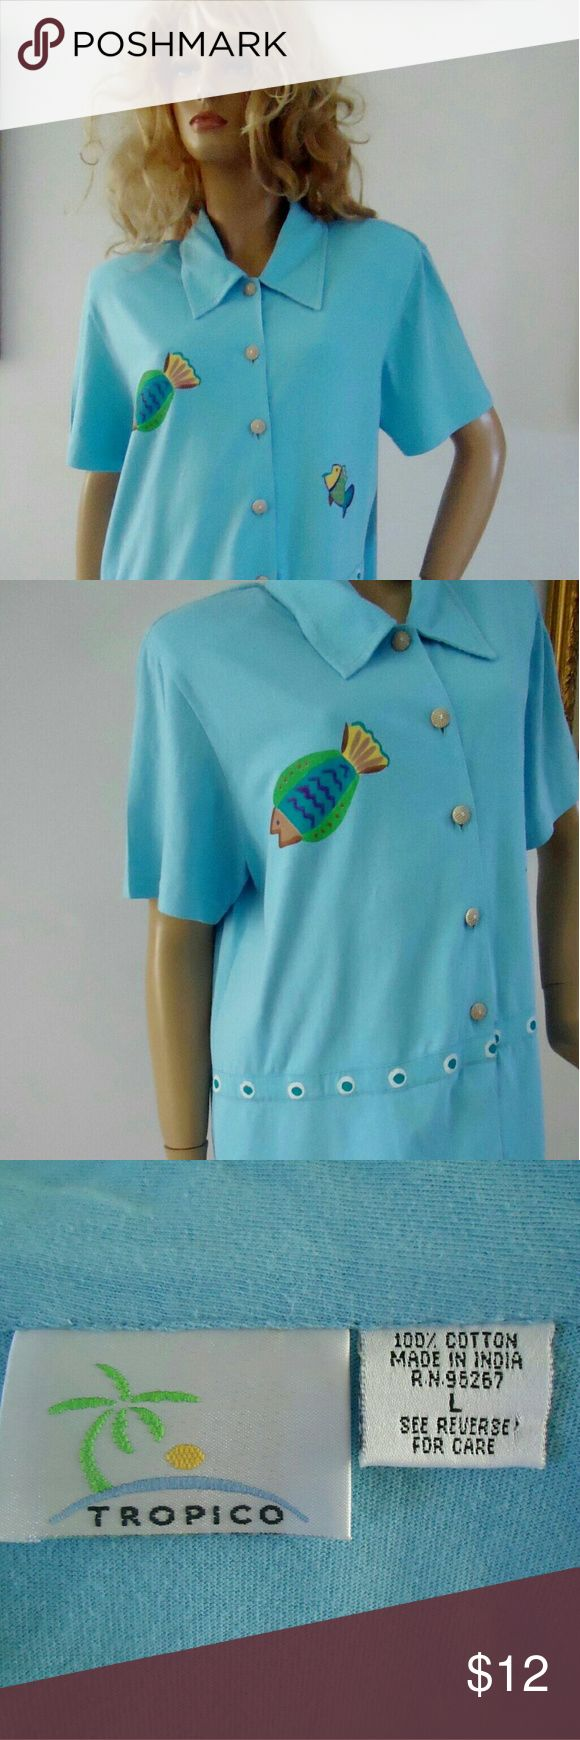 "Tropico Cruise Vacation Shirt Ocean Blue Fishes Tropico Vacation Shirt ~ Cruise ~ Island Breeze ~?Bright Ocean Blue?Fish Pattern?   ?Button down ,?short sleeve shirt?, side slits, padded shoulders , ""coconut"" ?buttons  Measurements when lying flat:?23.5"" bust (armpit to armpit) , 19"" shoulder to shoulder, 29.5"" long(neckline to hemline) . Great condition! Tropico  Tops Button Down Shirts"